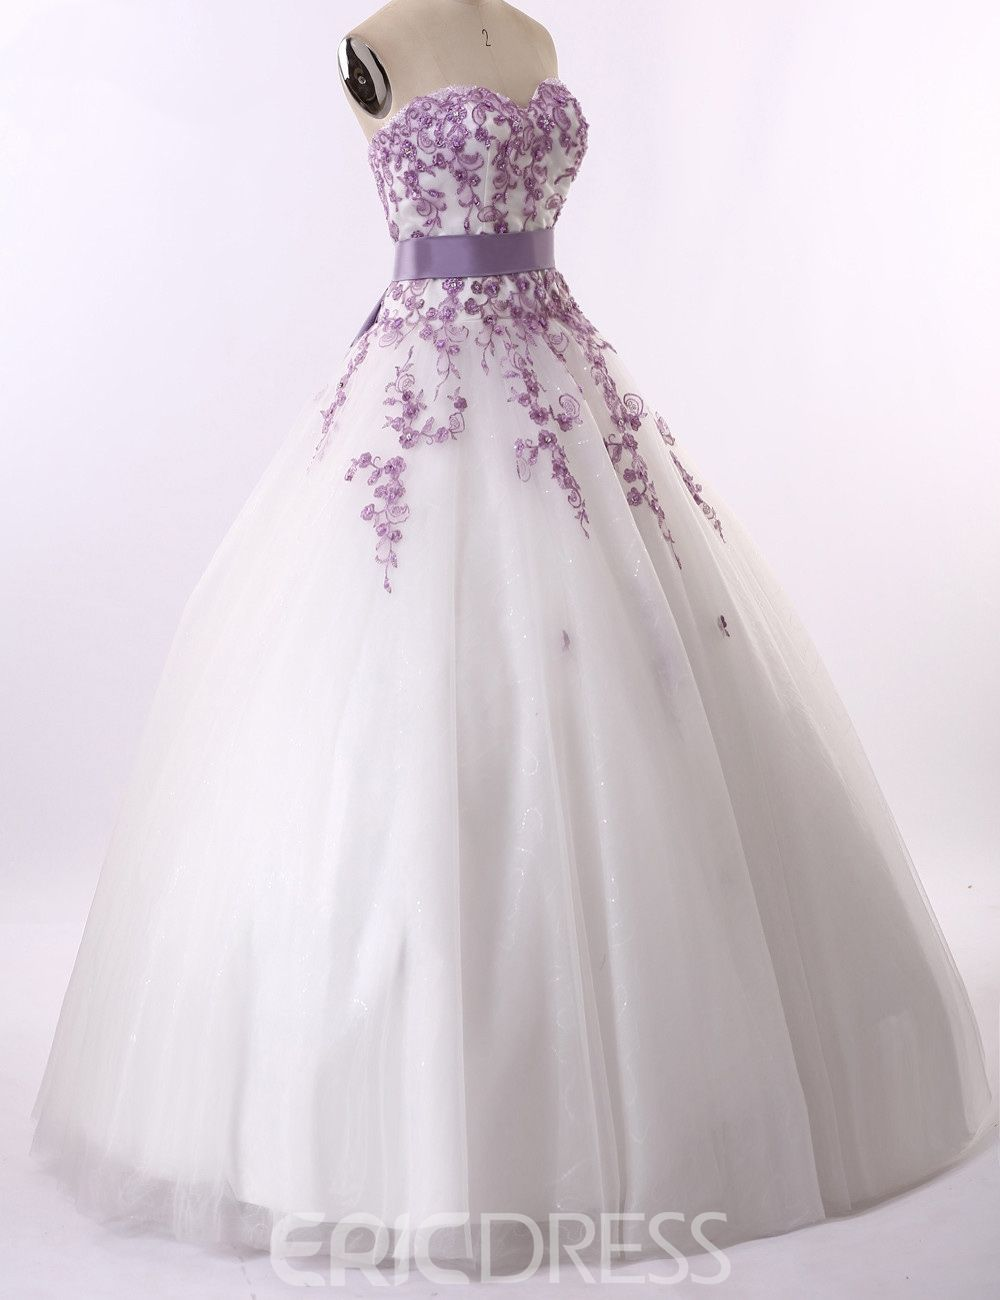 Ericdress Long Colorful Appliques Ball Gown Sweetheart Wedding